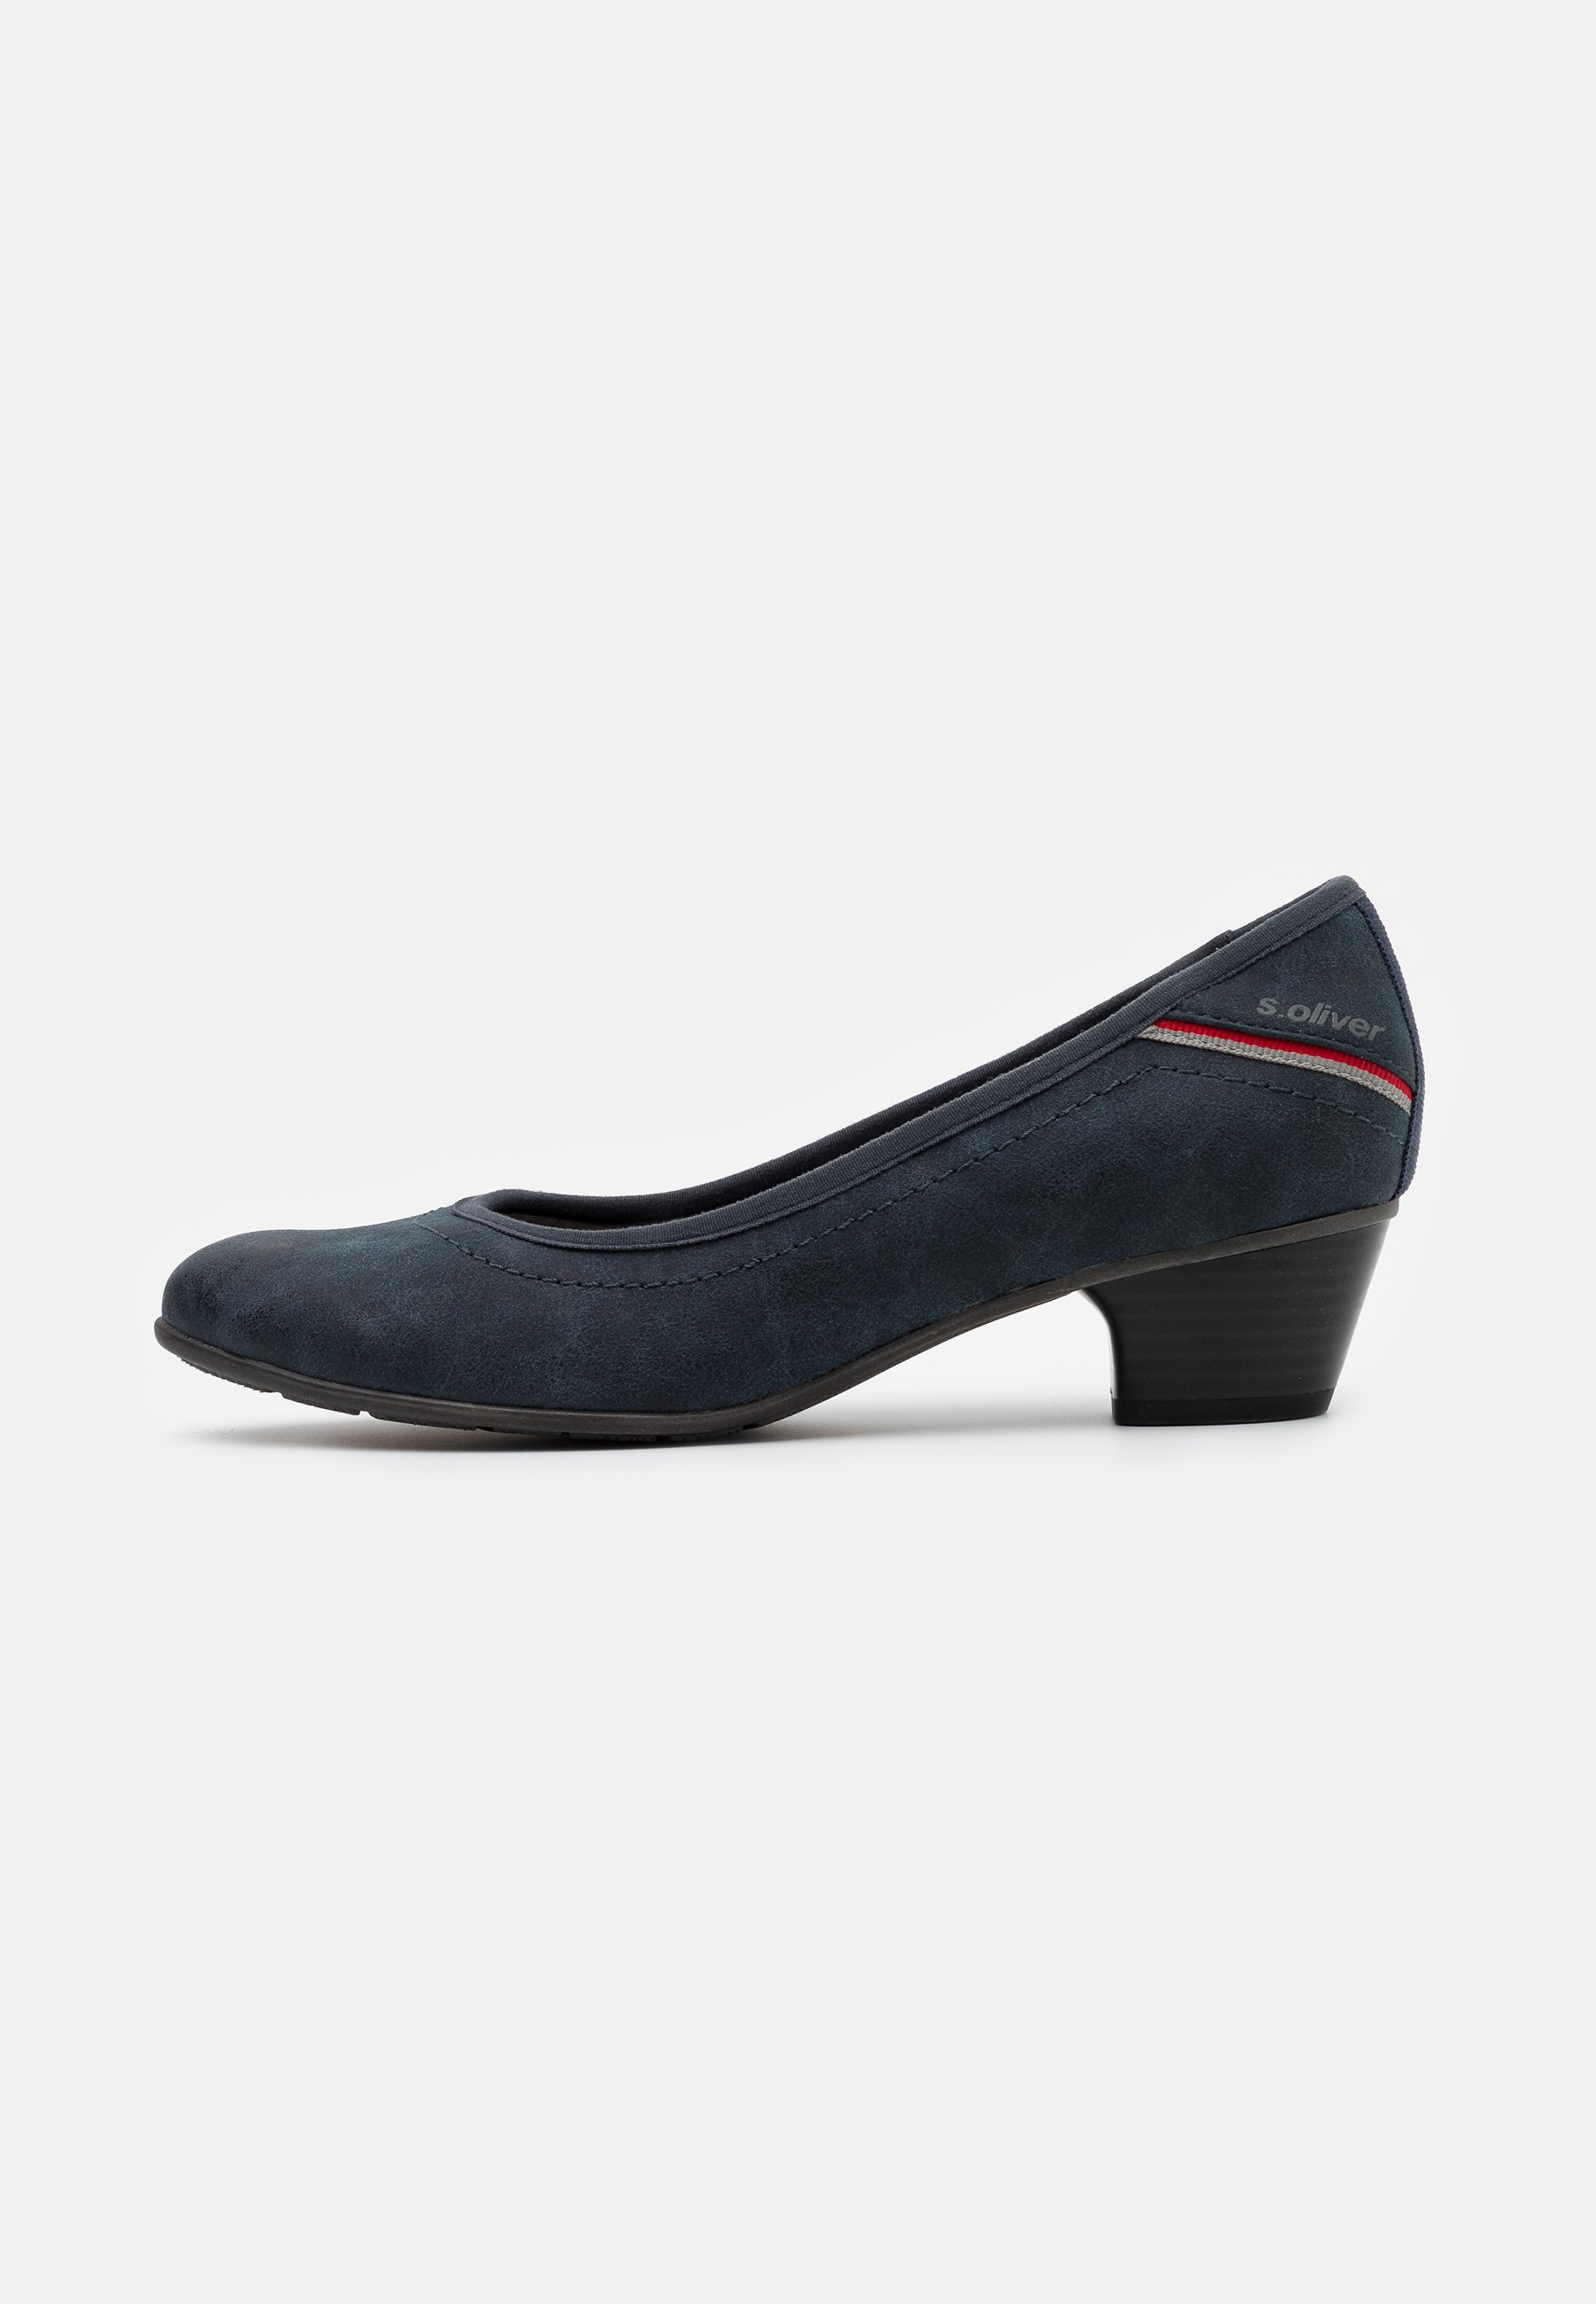 COURT SHOE Pumps navy